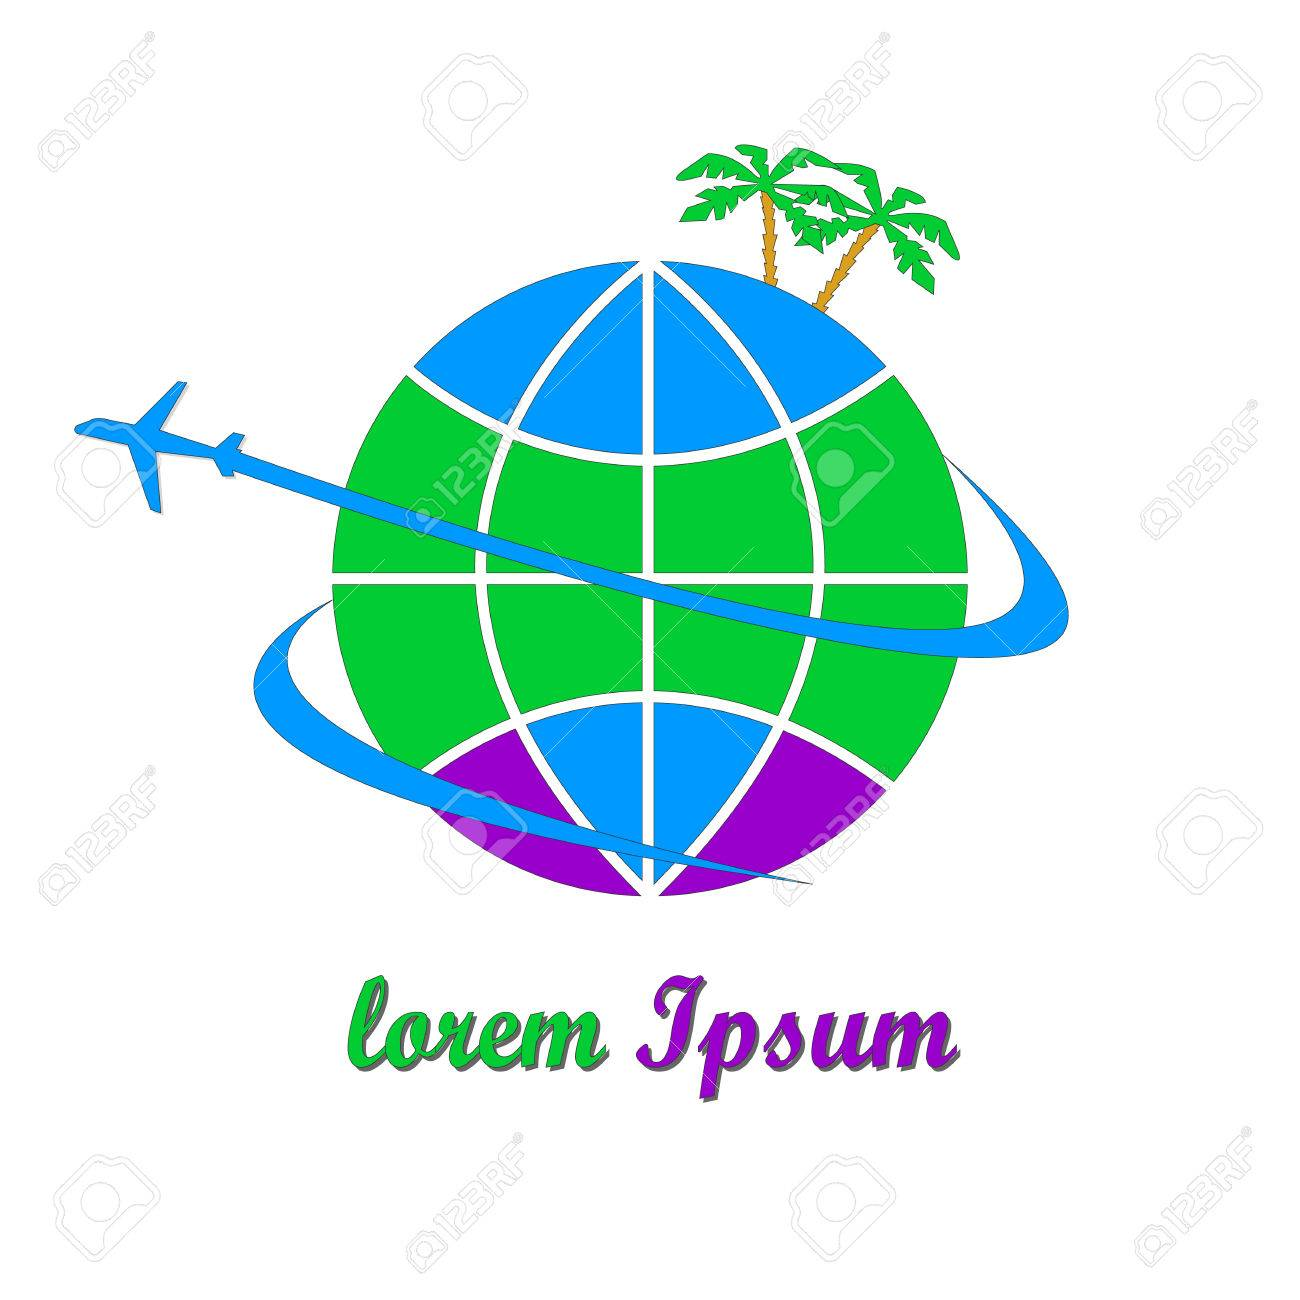 This Logo Was Created For The Travel Company The Logo Depicts The Planet Earth A Plane And Palm Trees Royalty Free Cliparts Vetores E Ilustracoes Stock Image 66299273